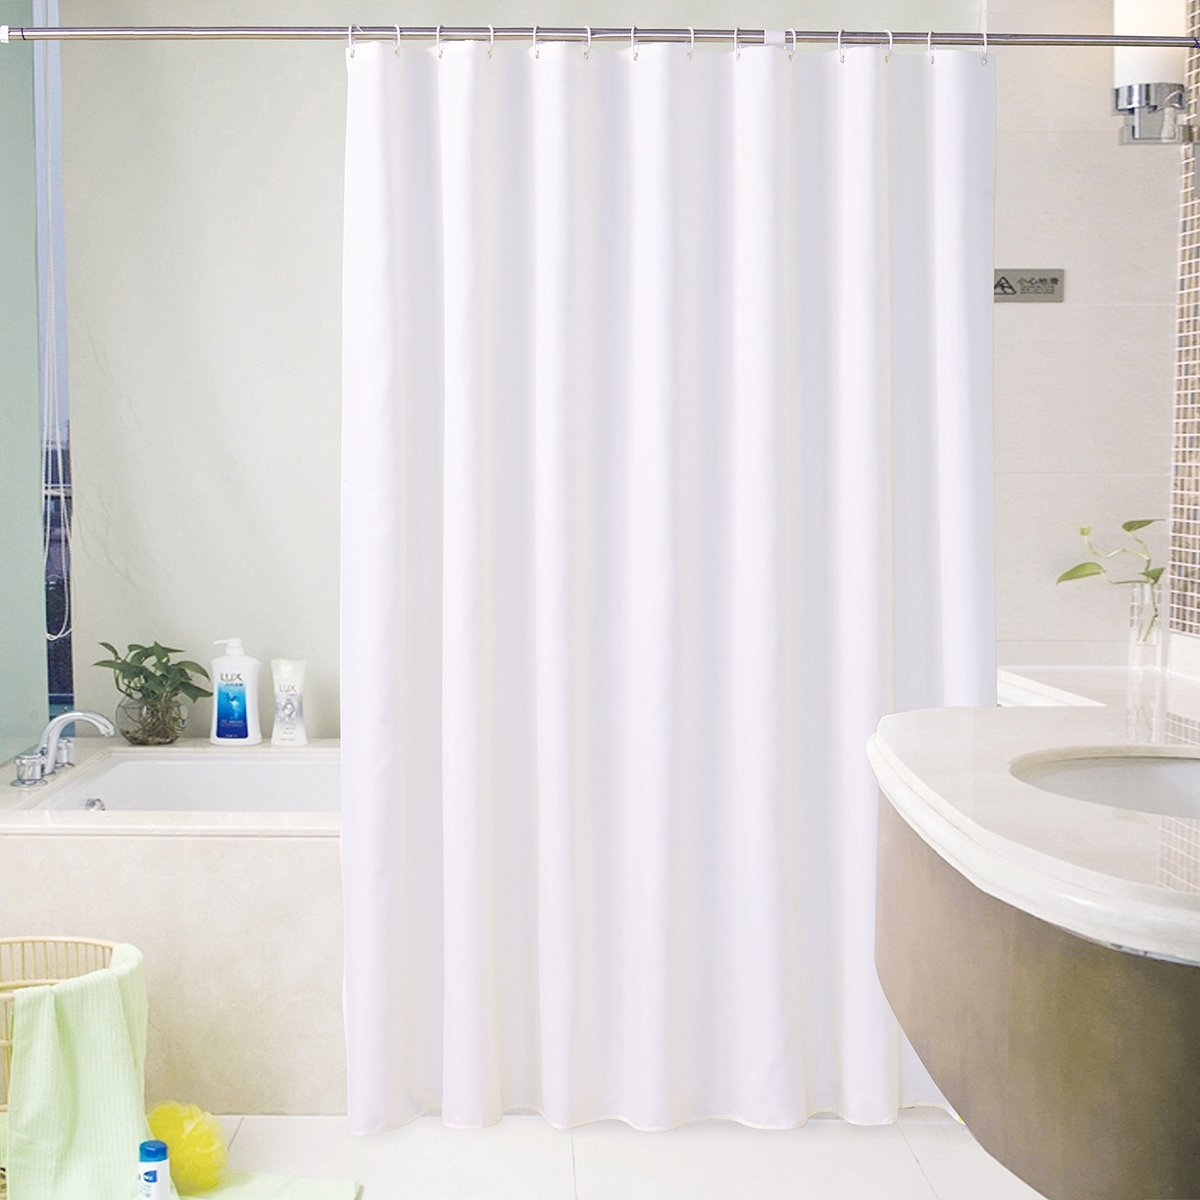 Amazon ENNAS Hotel Home Bathroom Shower Curtain Mold Mildew Resistant Machine Washable Kitchen